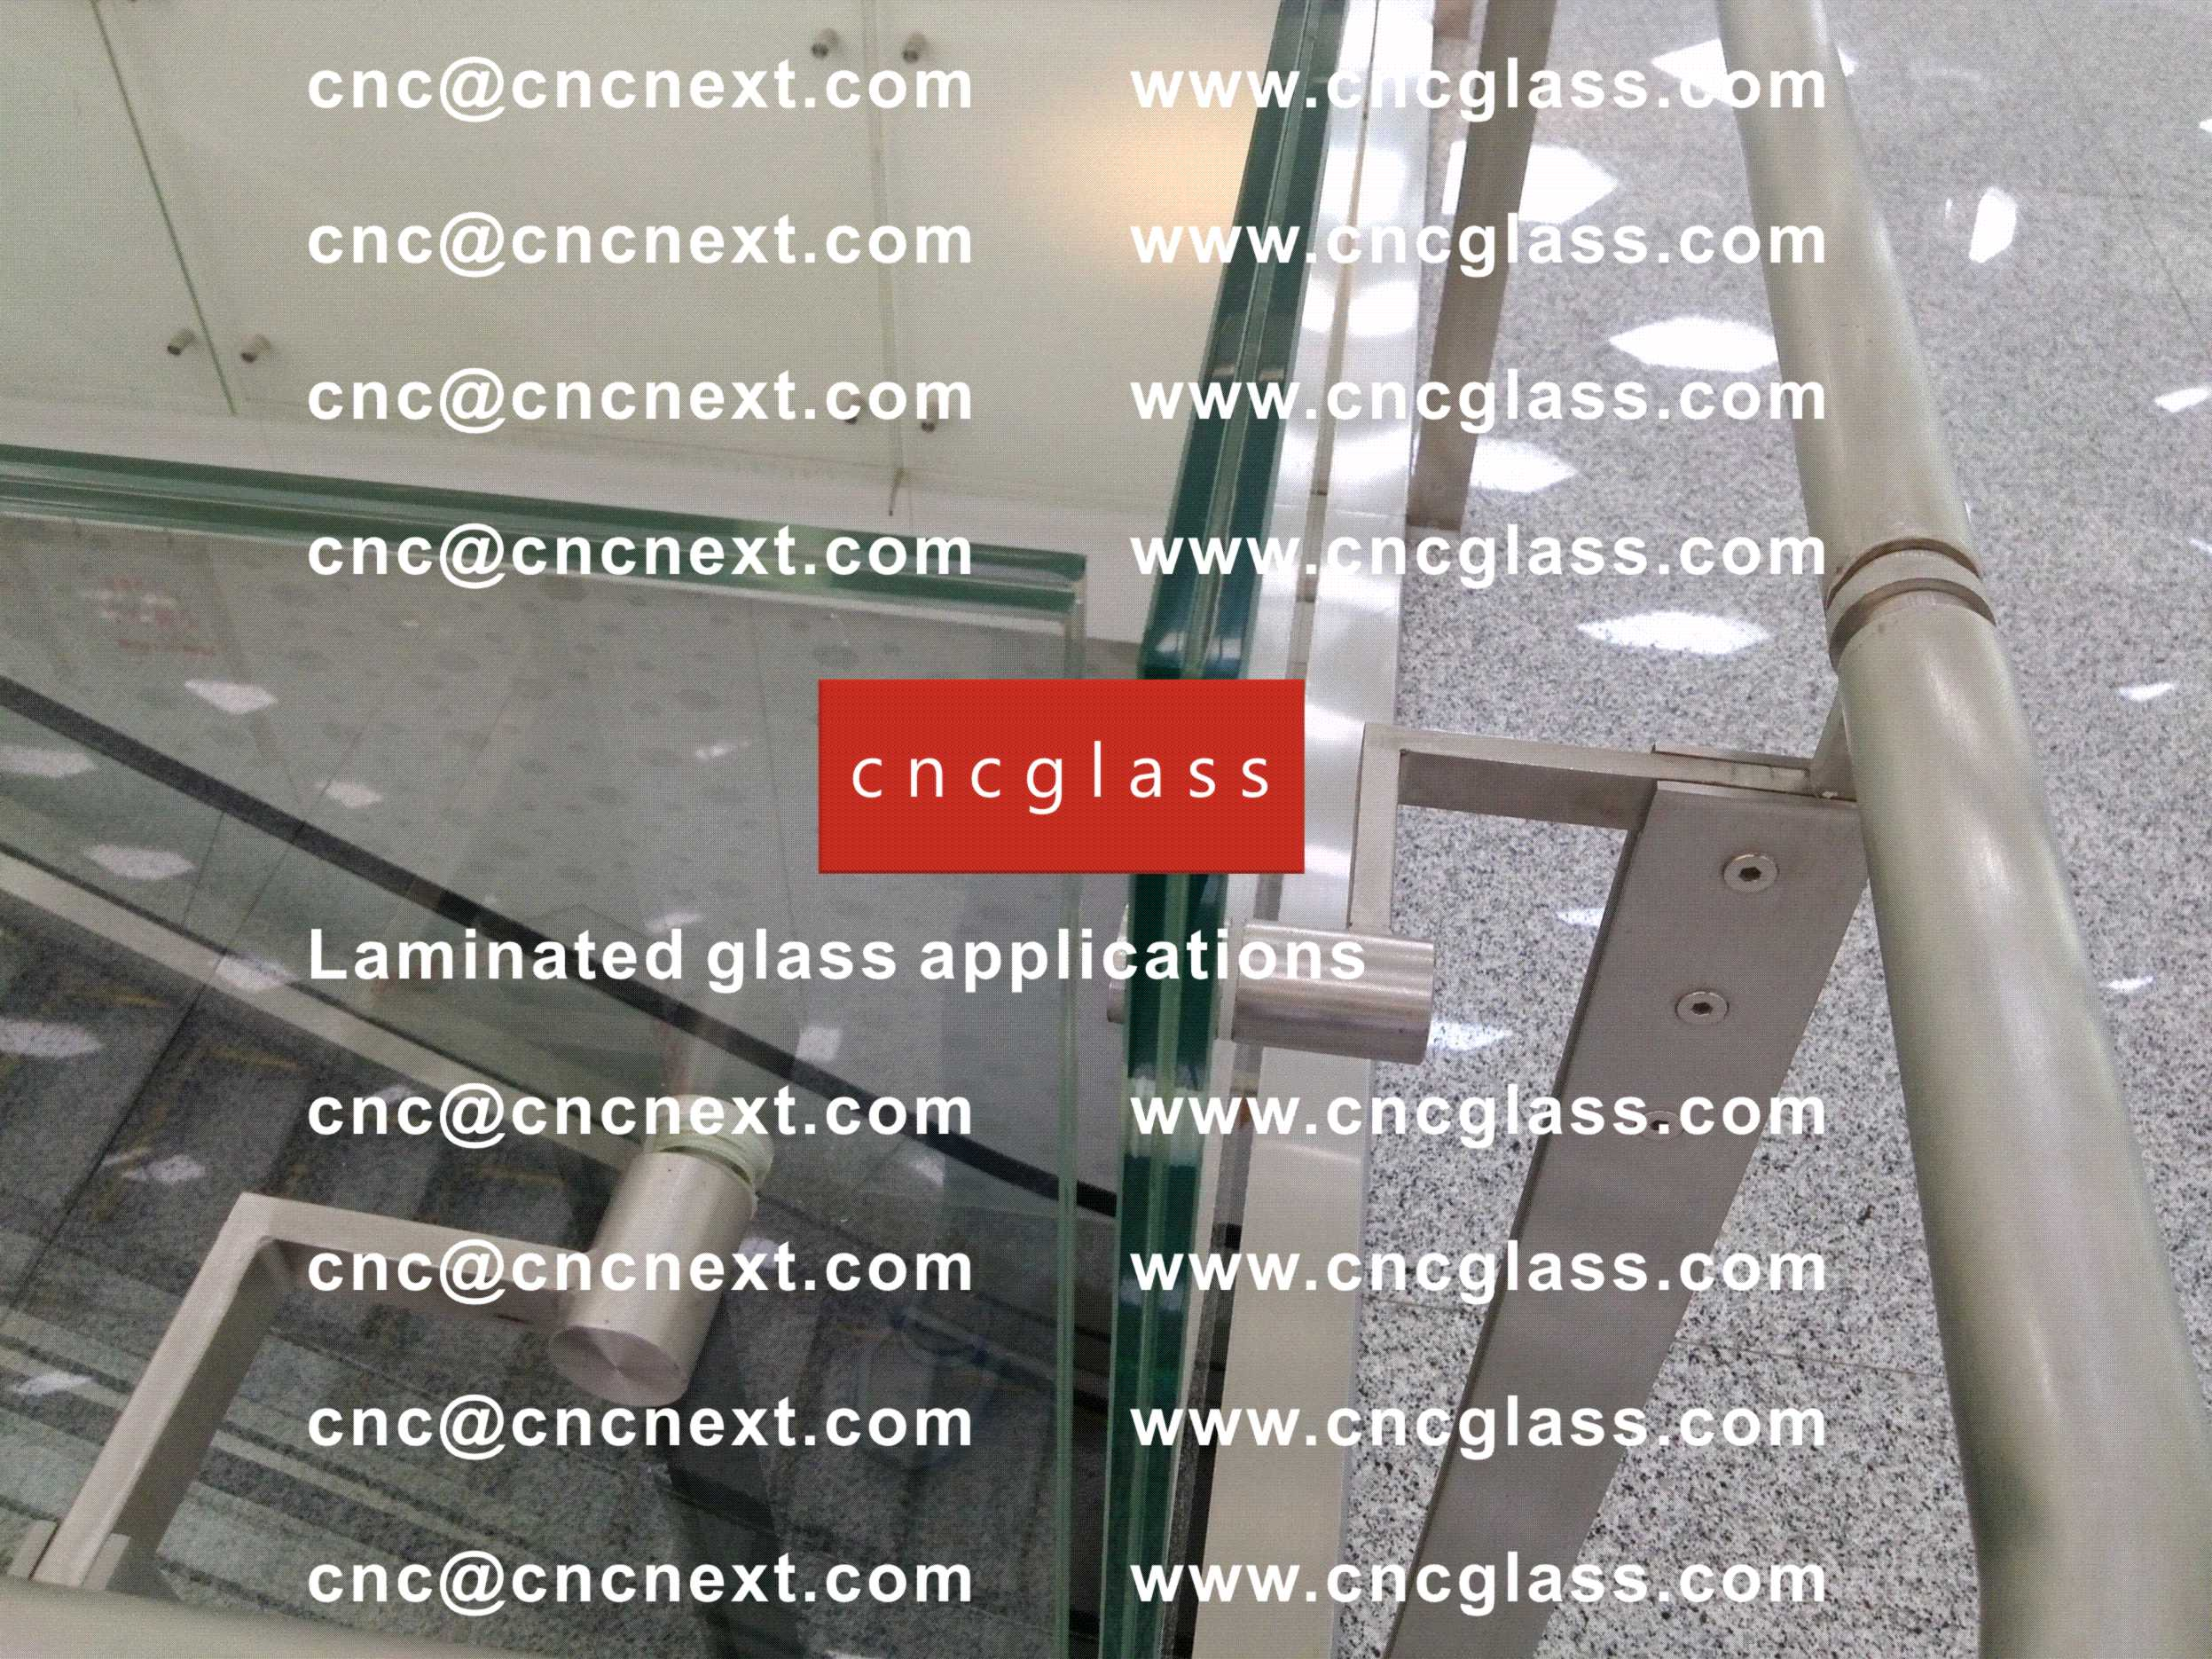 004 EVAFORCE LAMINATED GLASS